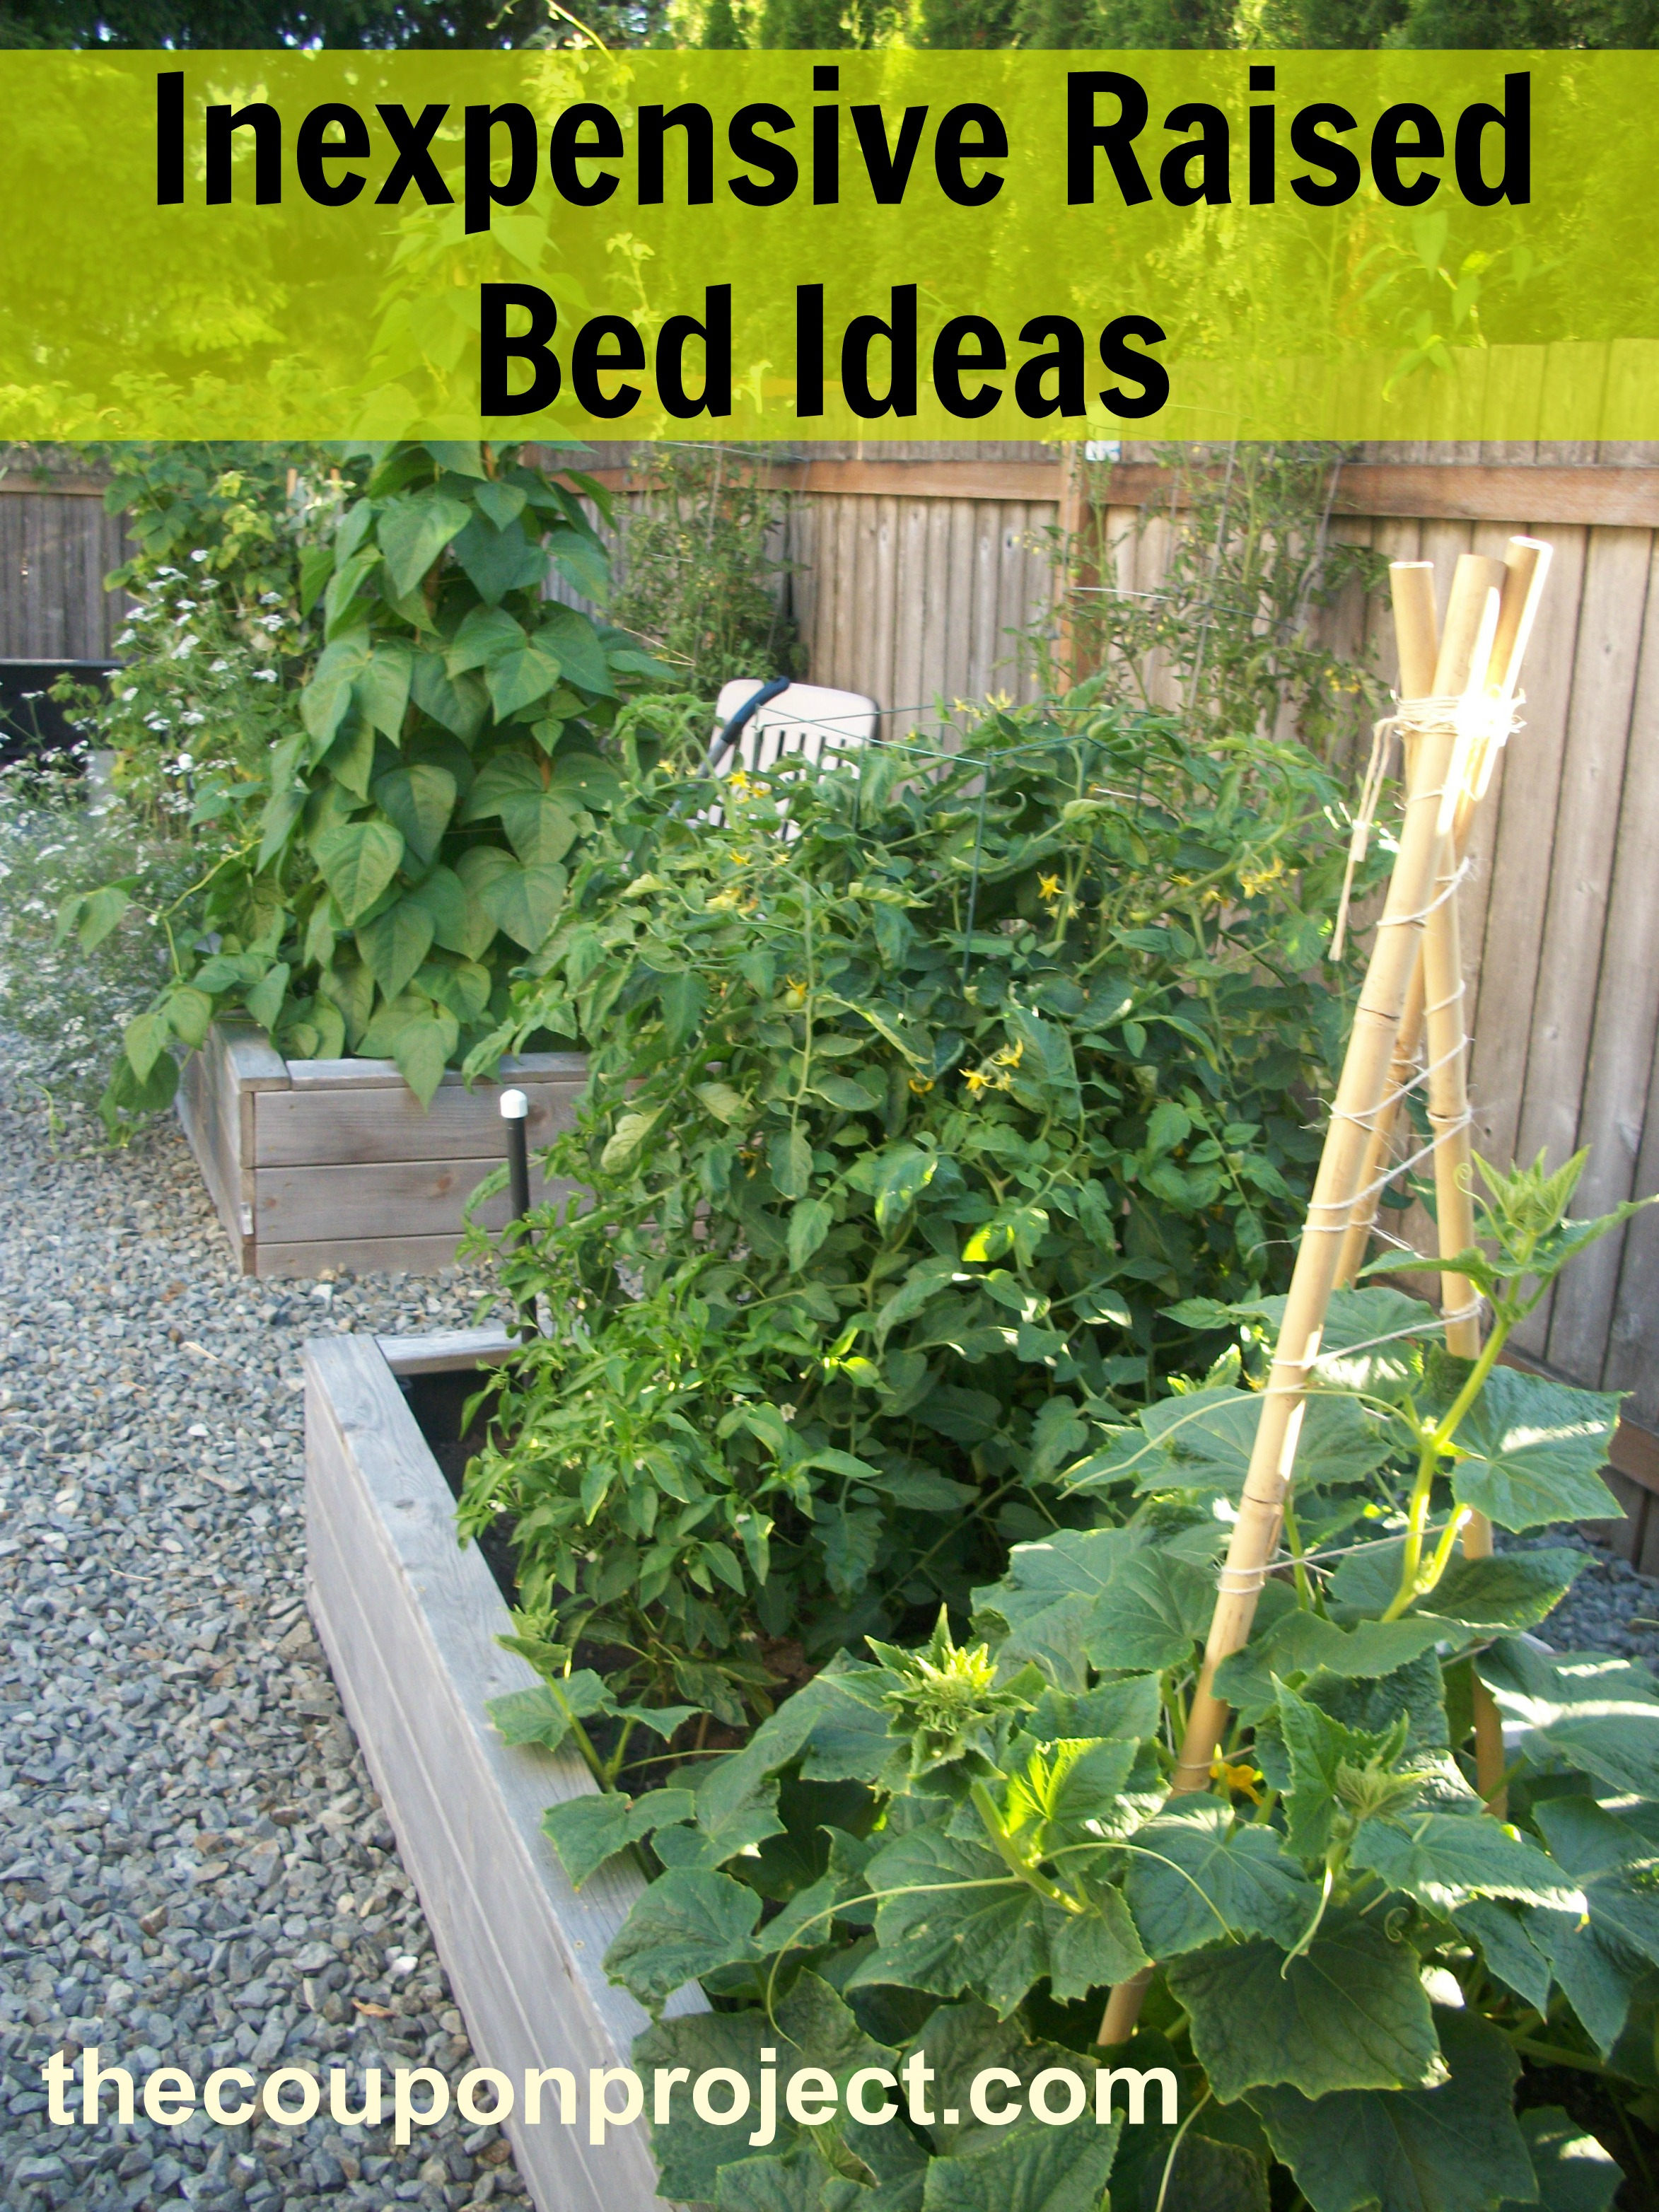 Garden Beds Ideas if you follow me on instagram you may have seen the photos i posted of diy raised garden bedsraised Frugal Gardening Four Inexpensive Raised Bed Ideas